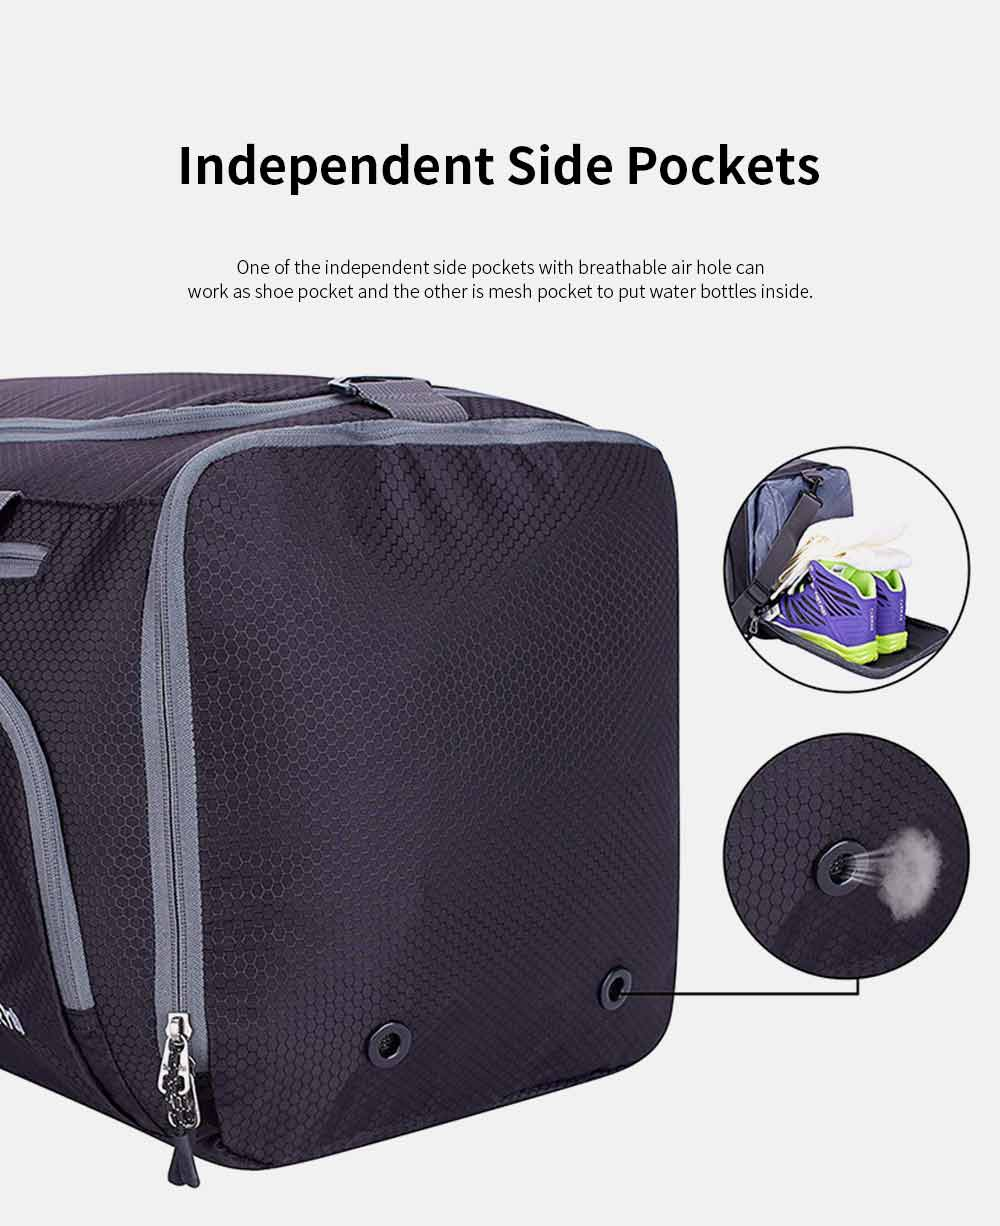 Nylon Oxford Wet and Dry Separation Bag with Two-way Zipper Major Pocket Durable Waterproof Separate Shoe Pocket Unisex Travelling Bag Large Capacity Valise Storage Bag 3